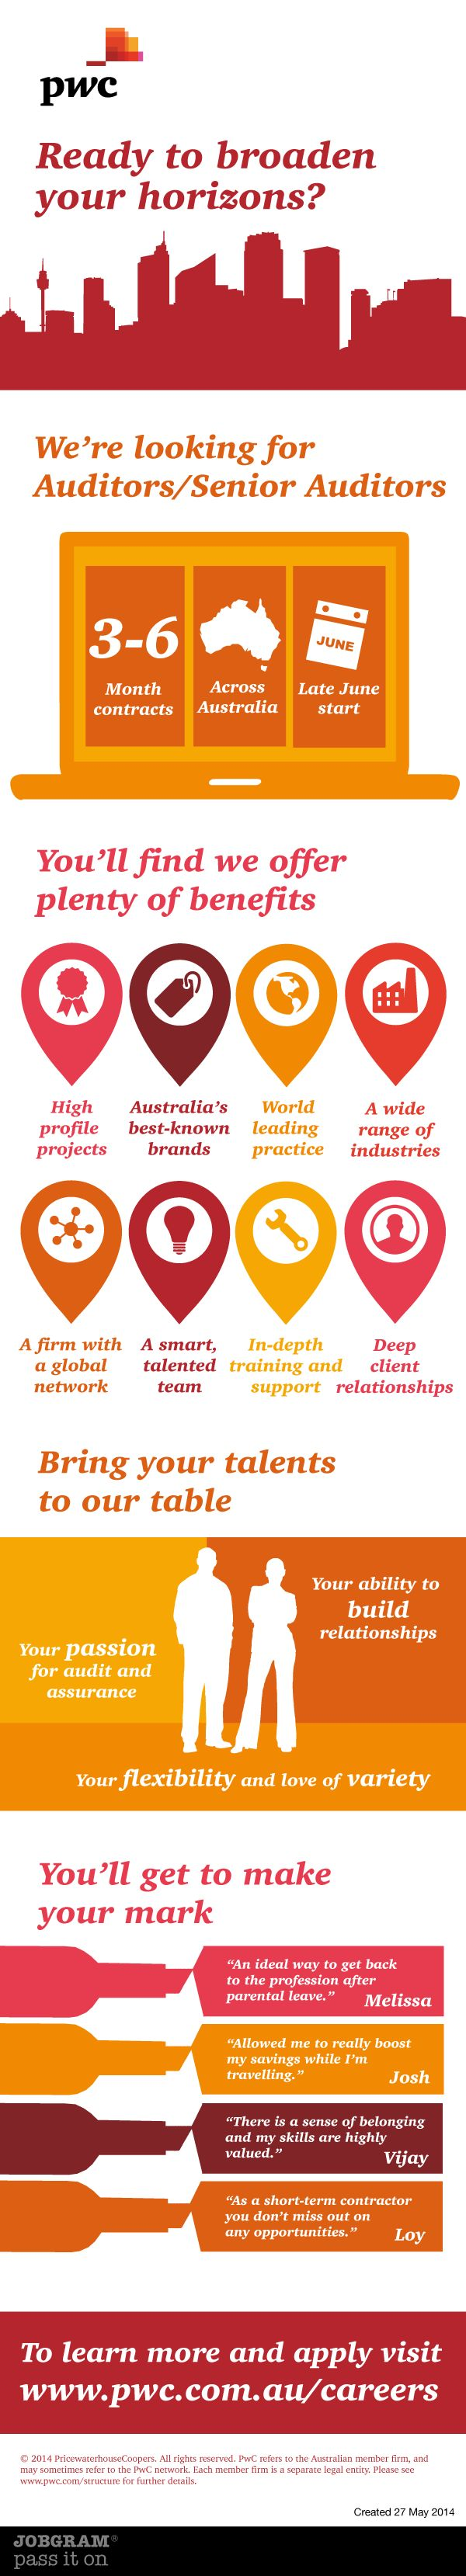 The PwC Assurance business is the world's leading practice of its kind. PwC Australia is currently offering 3-6 month contract opportunities for auditors to work on high-profile financial assurance projects. For more information and to apply visit https://pwcau.taleo.net/careersection/lateralext/jobdetail.ftl?job=SYD000332&lang=en&media_id= {board_instance_id}&src={pipeline_id}. #Jobgram